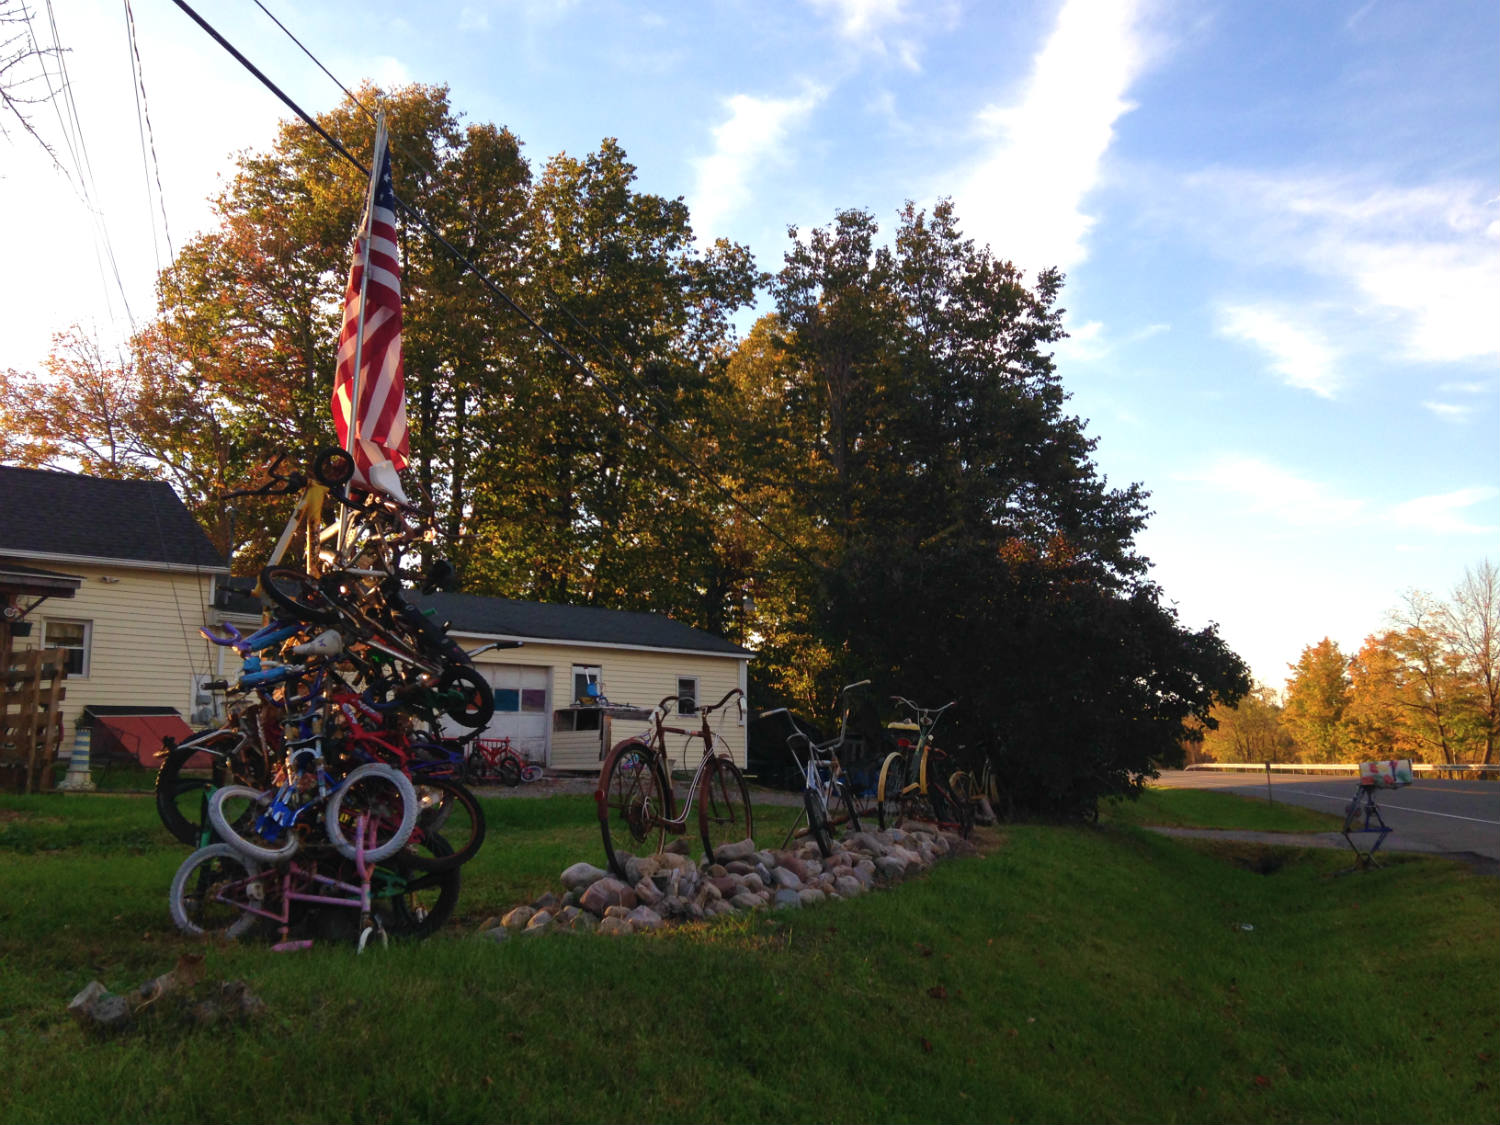 Bicycle Art and Yard Sculptures - Palmyra, NY Bikes with American Flag